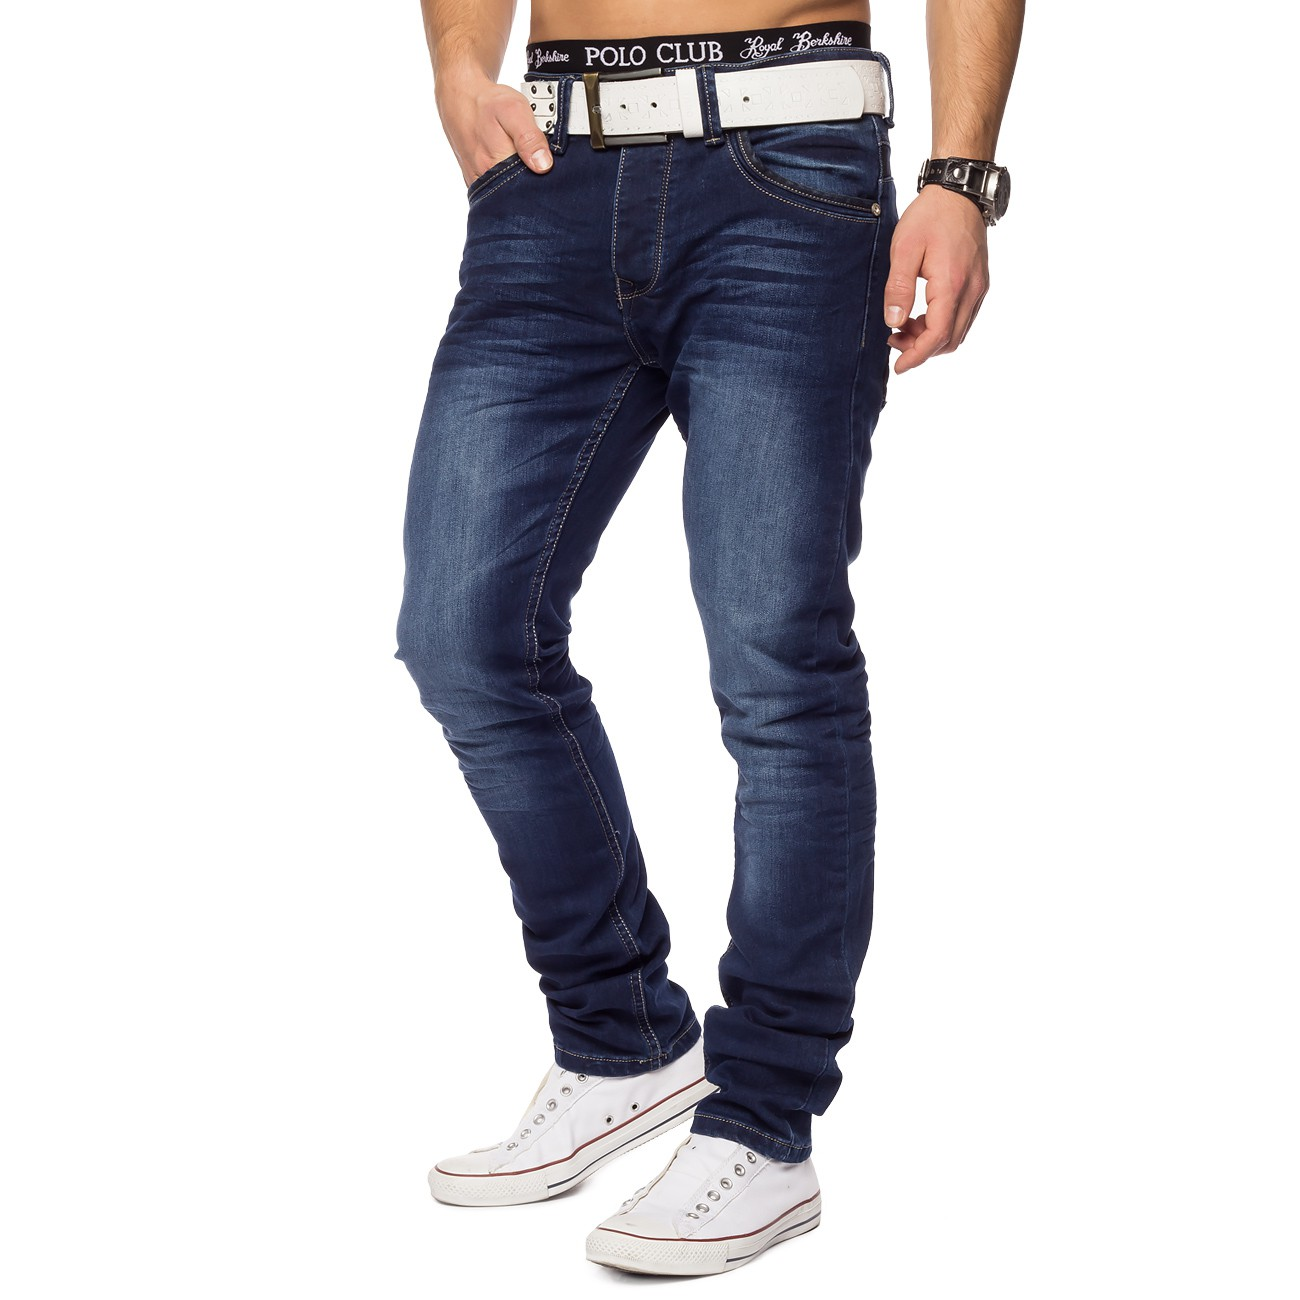 EGOMAXX Herren Chino Hose Slim Fit Stretch Jeans Tapered Leg Casual